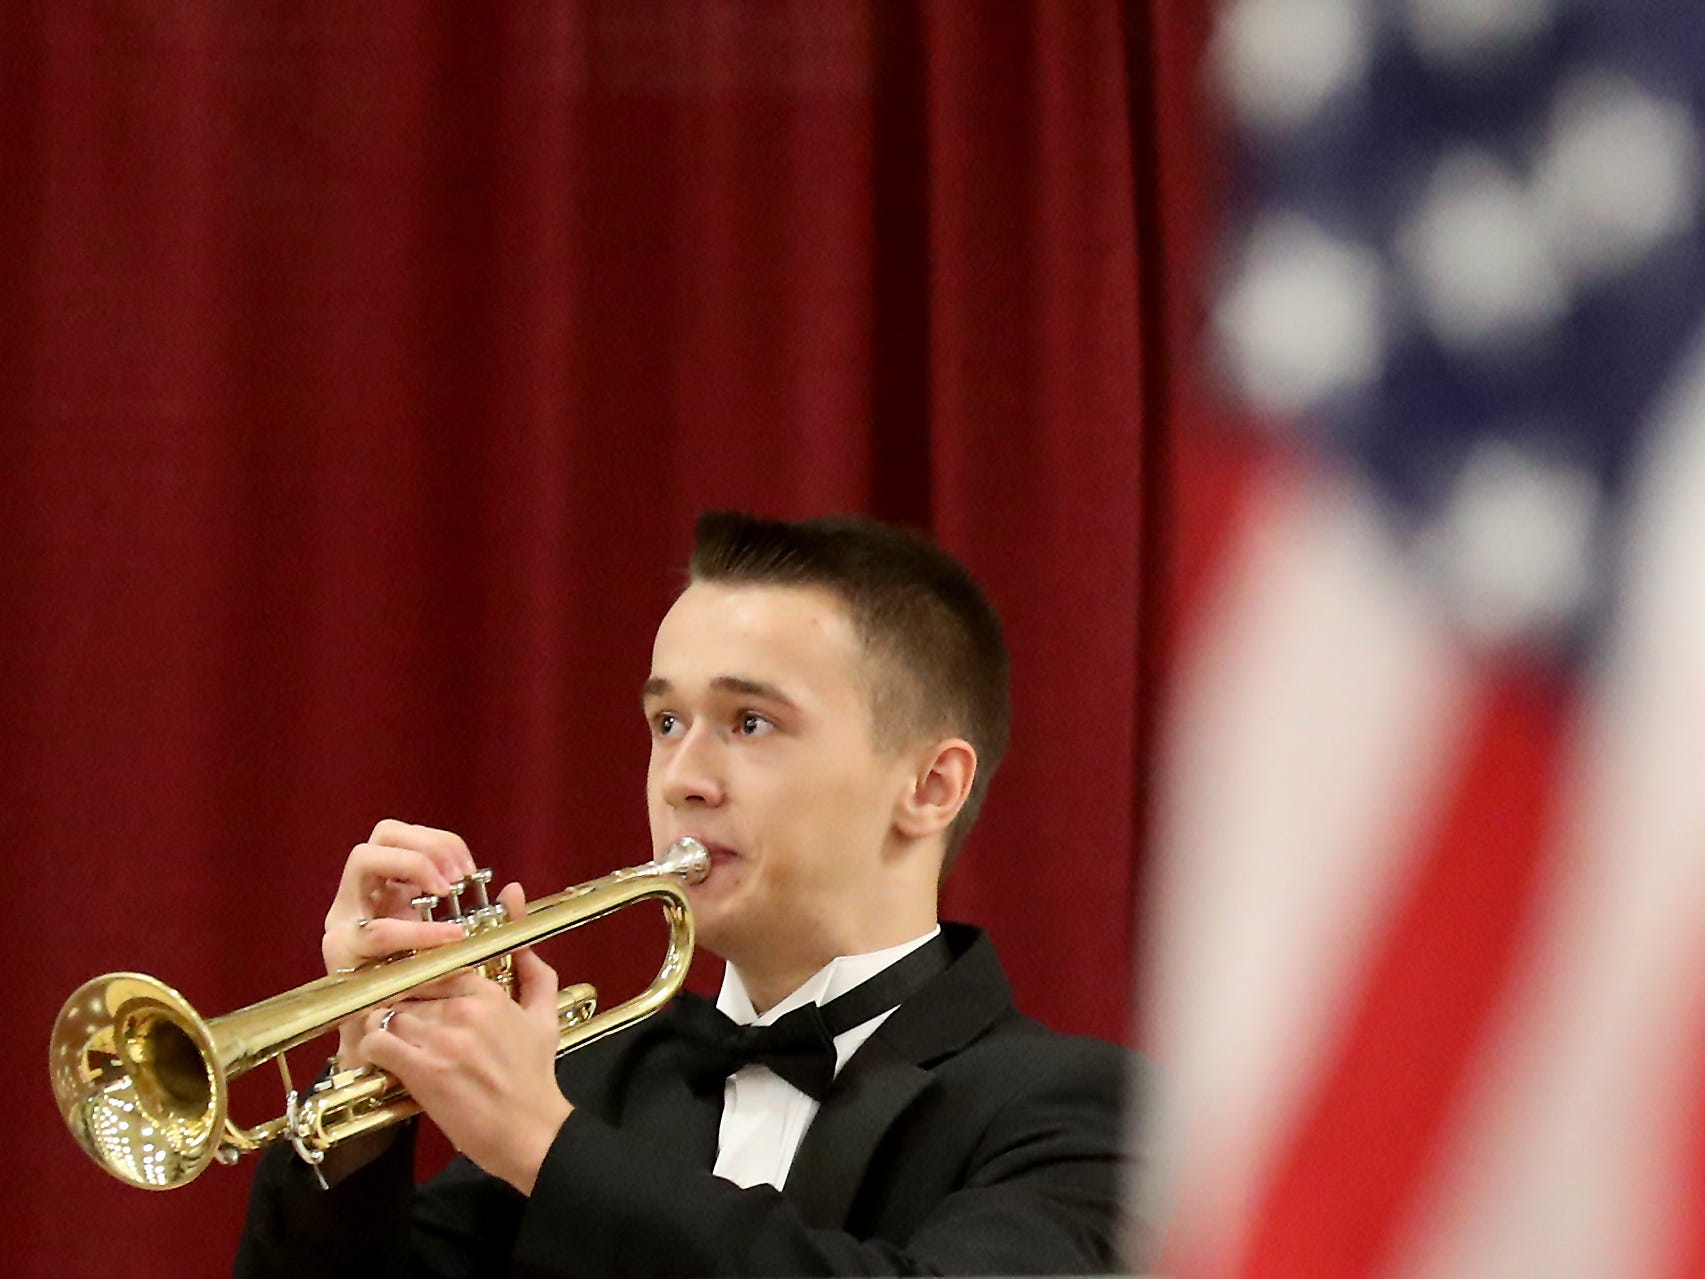 Spencer Allen, of the Bremerton High School Wind Ensemble, plays one half of Echo Taps at the closing of the Honoring All Who Served Veterans Day ceremony at the Kitsap Sun Pavilion on Monday, November 12, 2018.